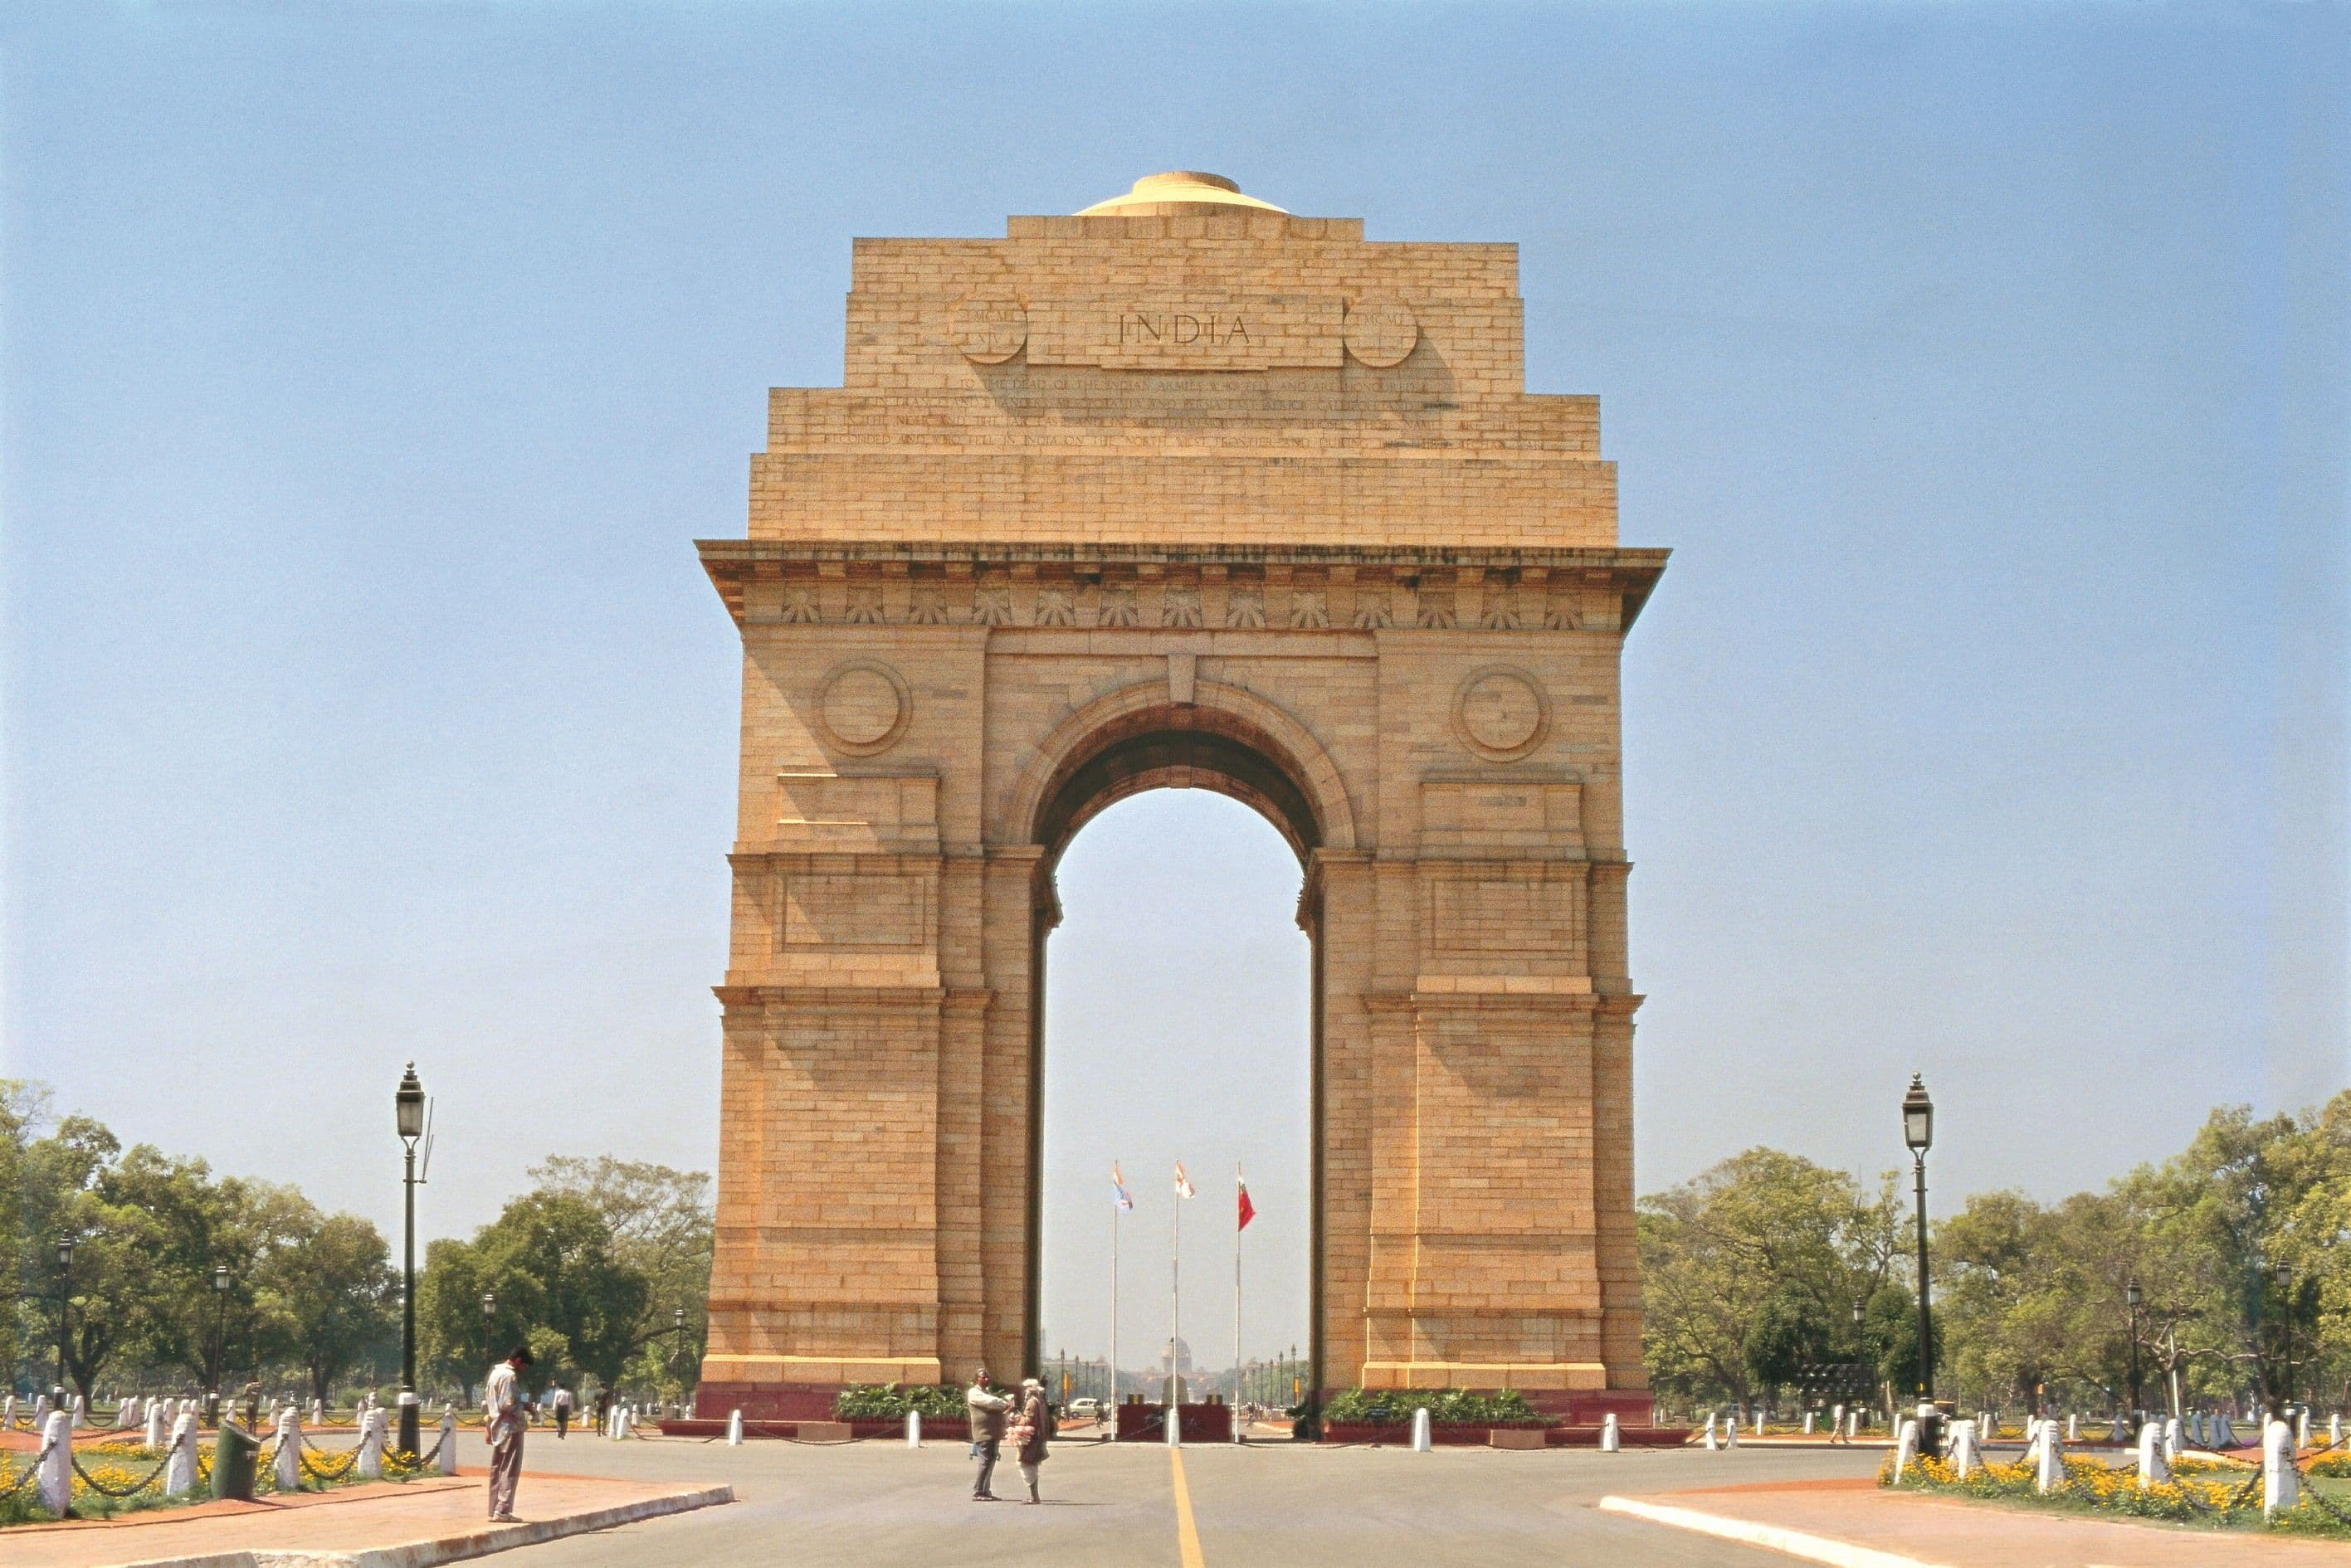 https://static.india.com/wp-content/uploads/2020/04/India-Gate.jpg